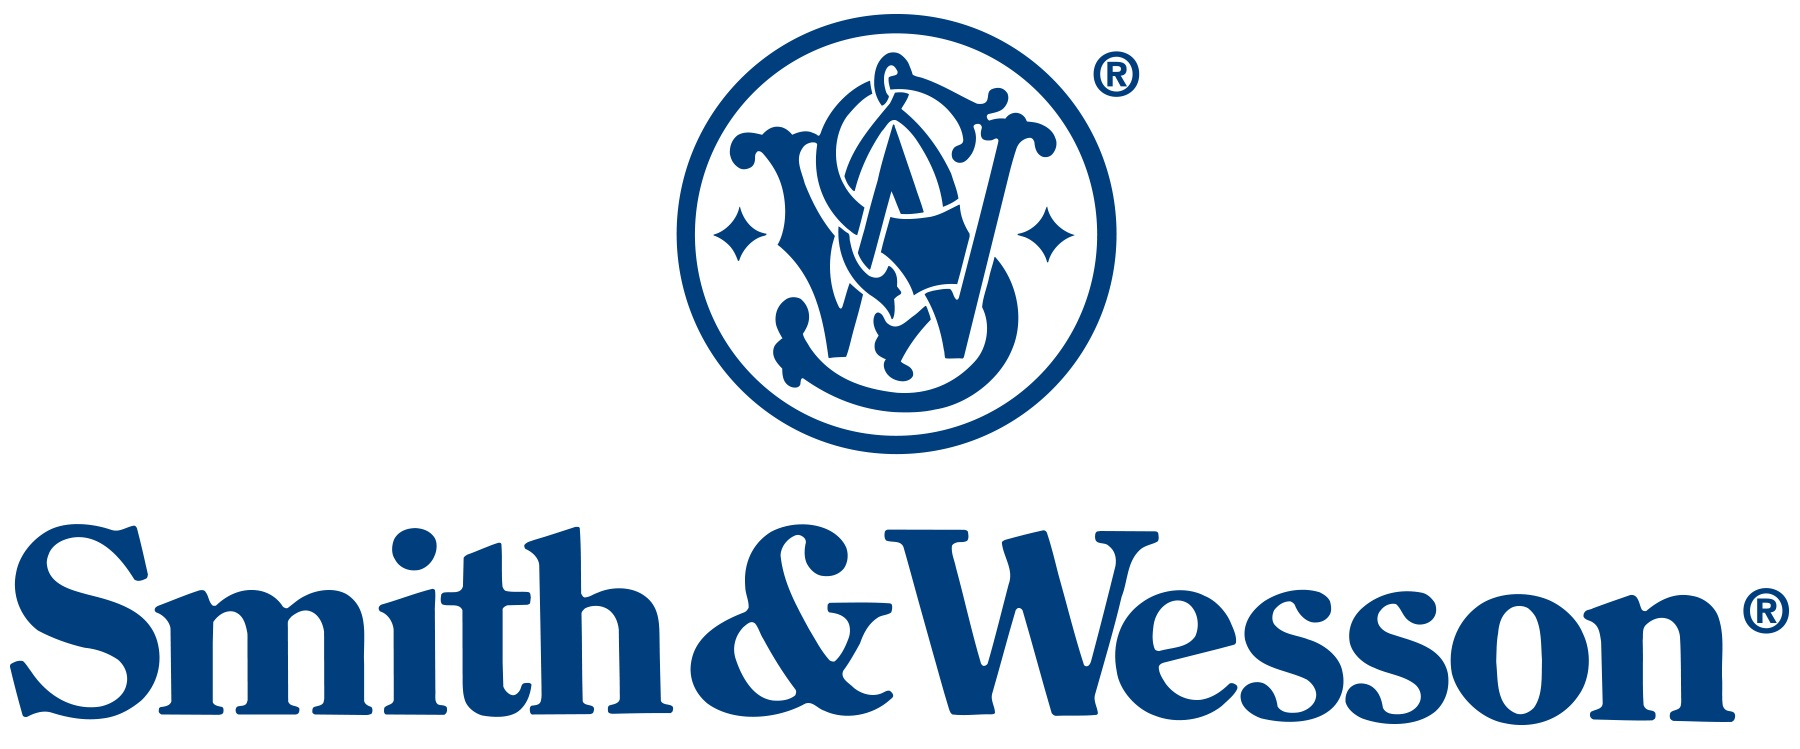 Smith & Wesson to Relocate Headquarters to Tennessee